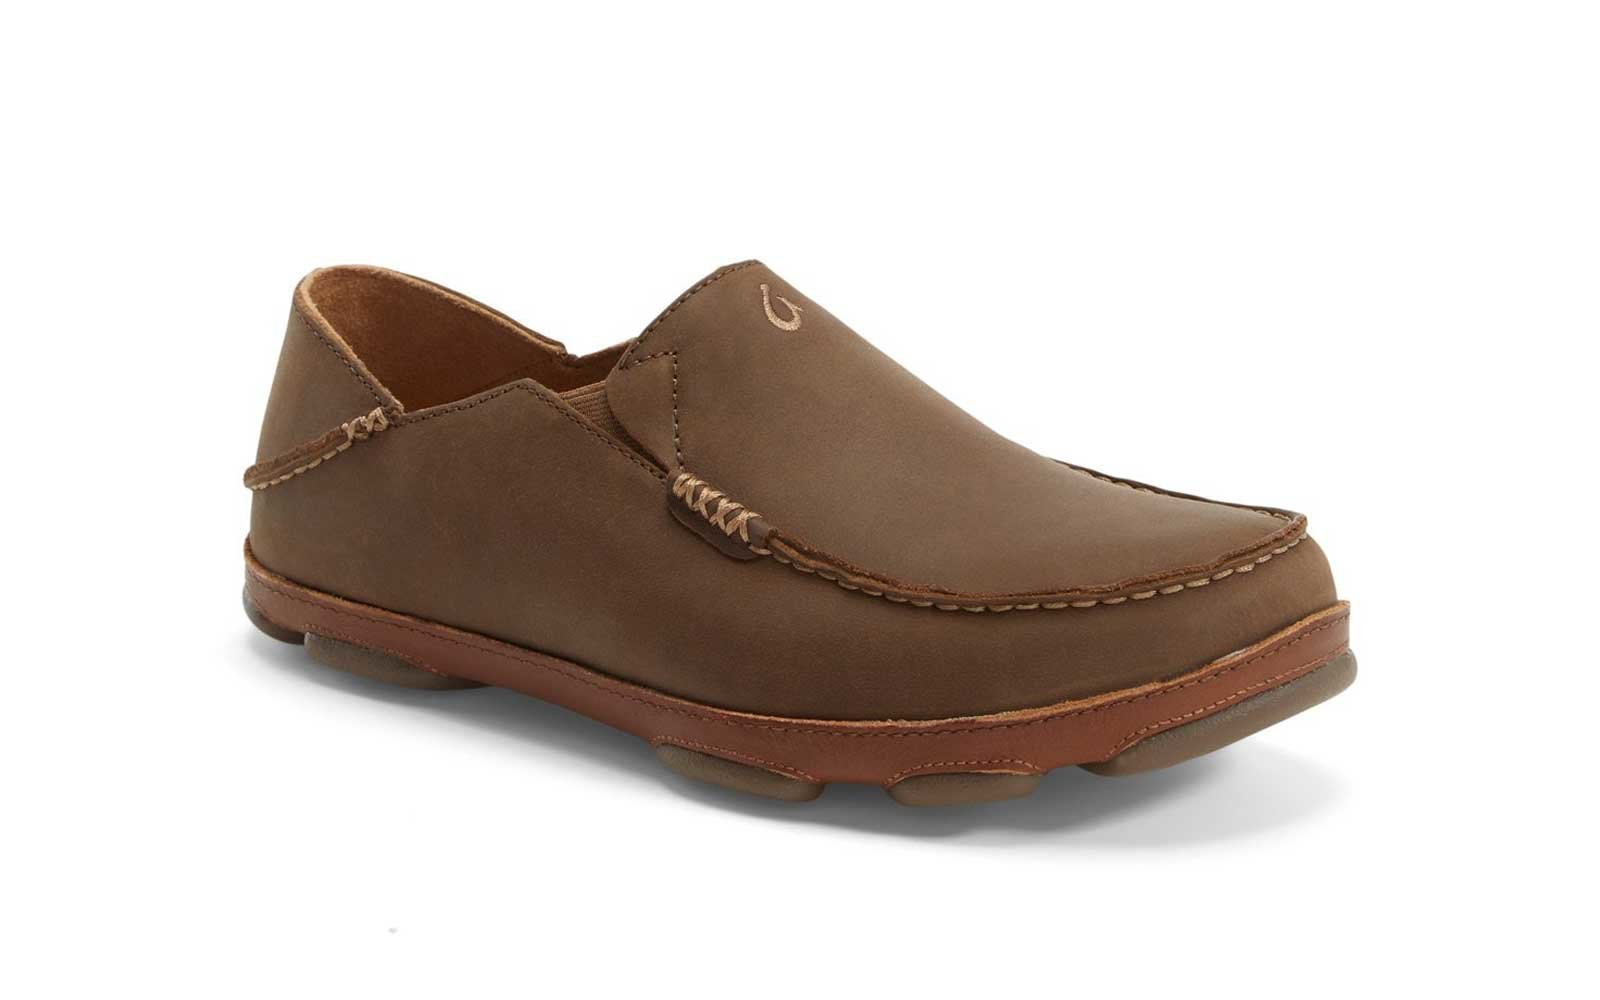 Olukai 'Moloa' Water-resistant Slip-on